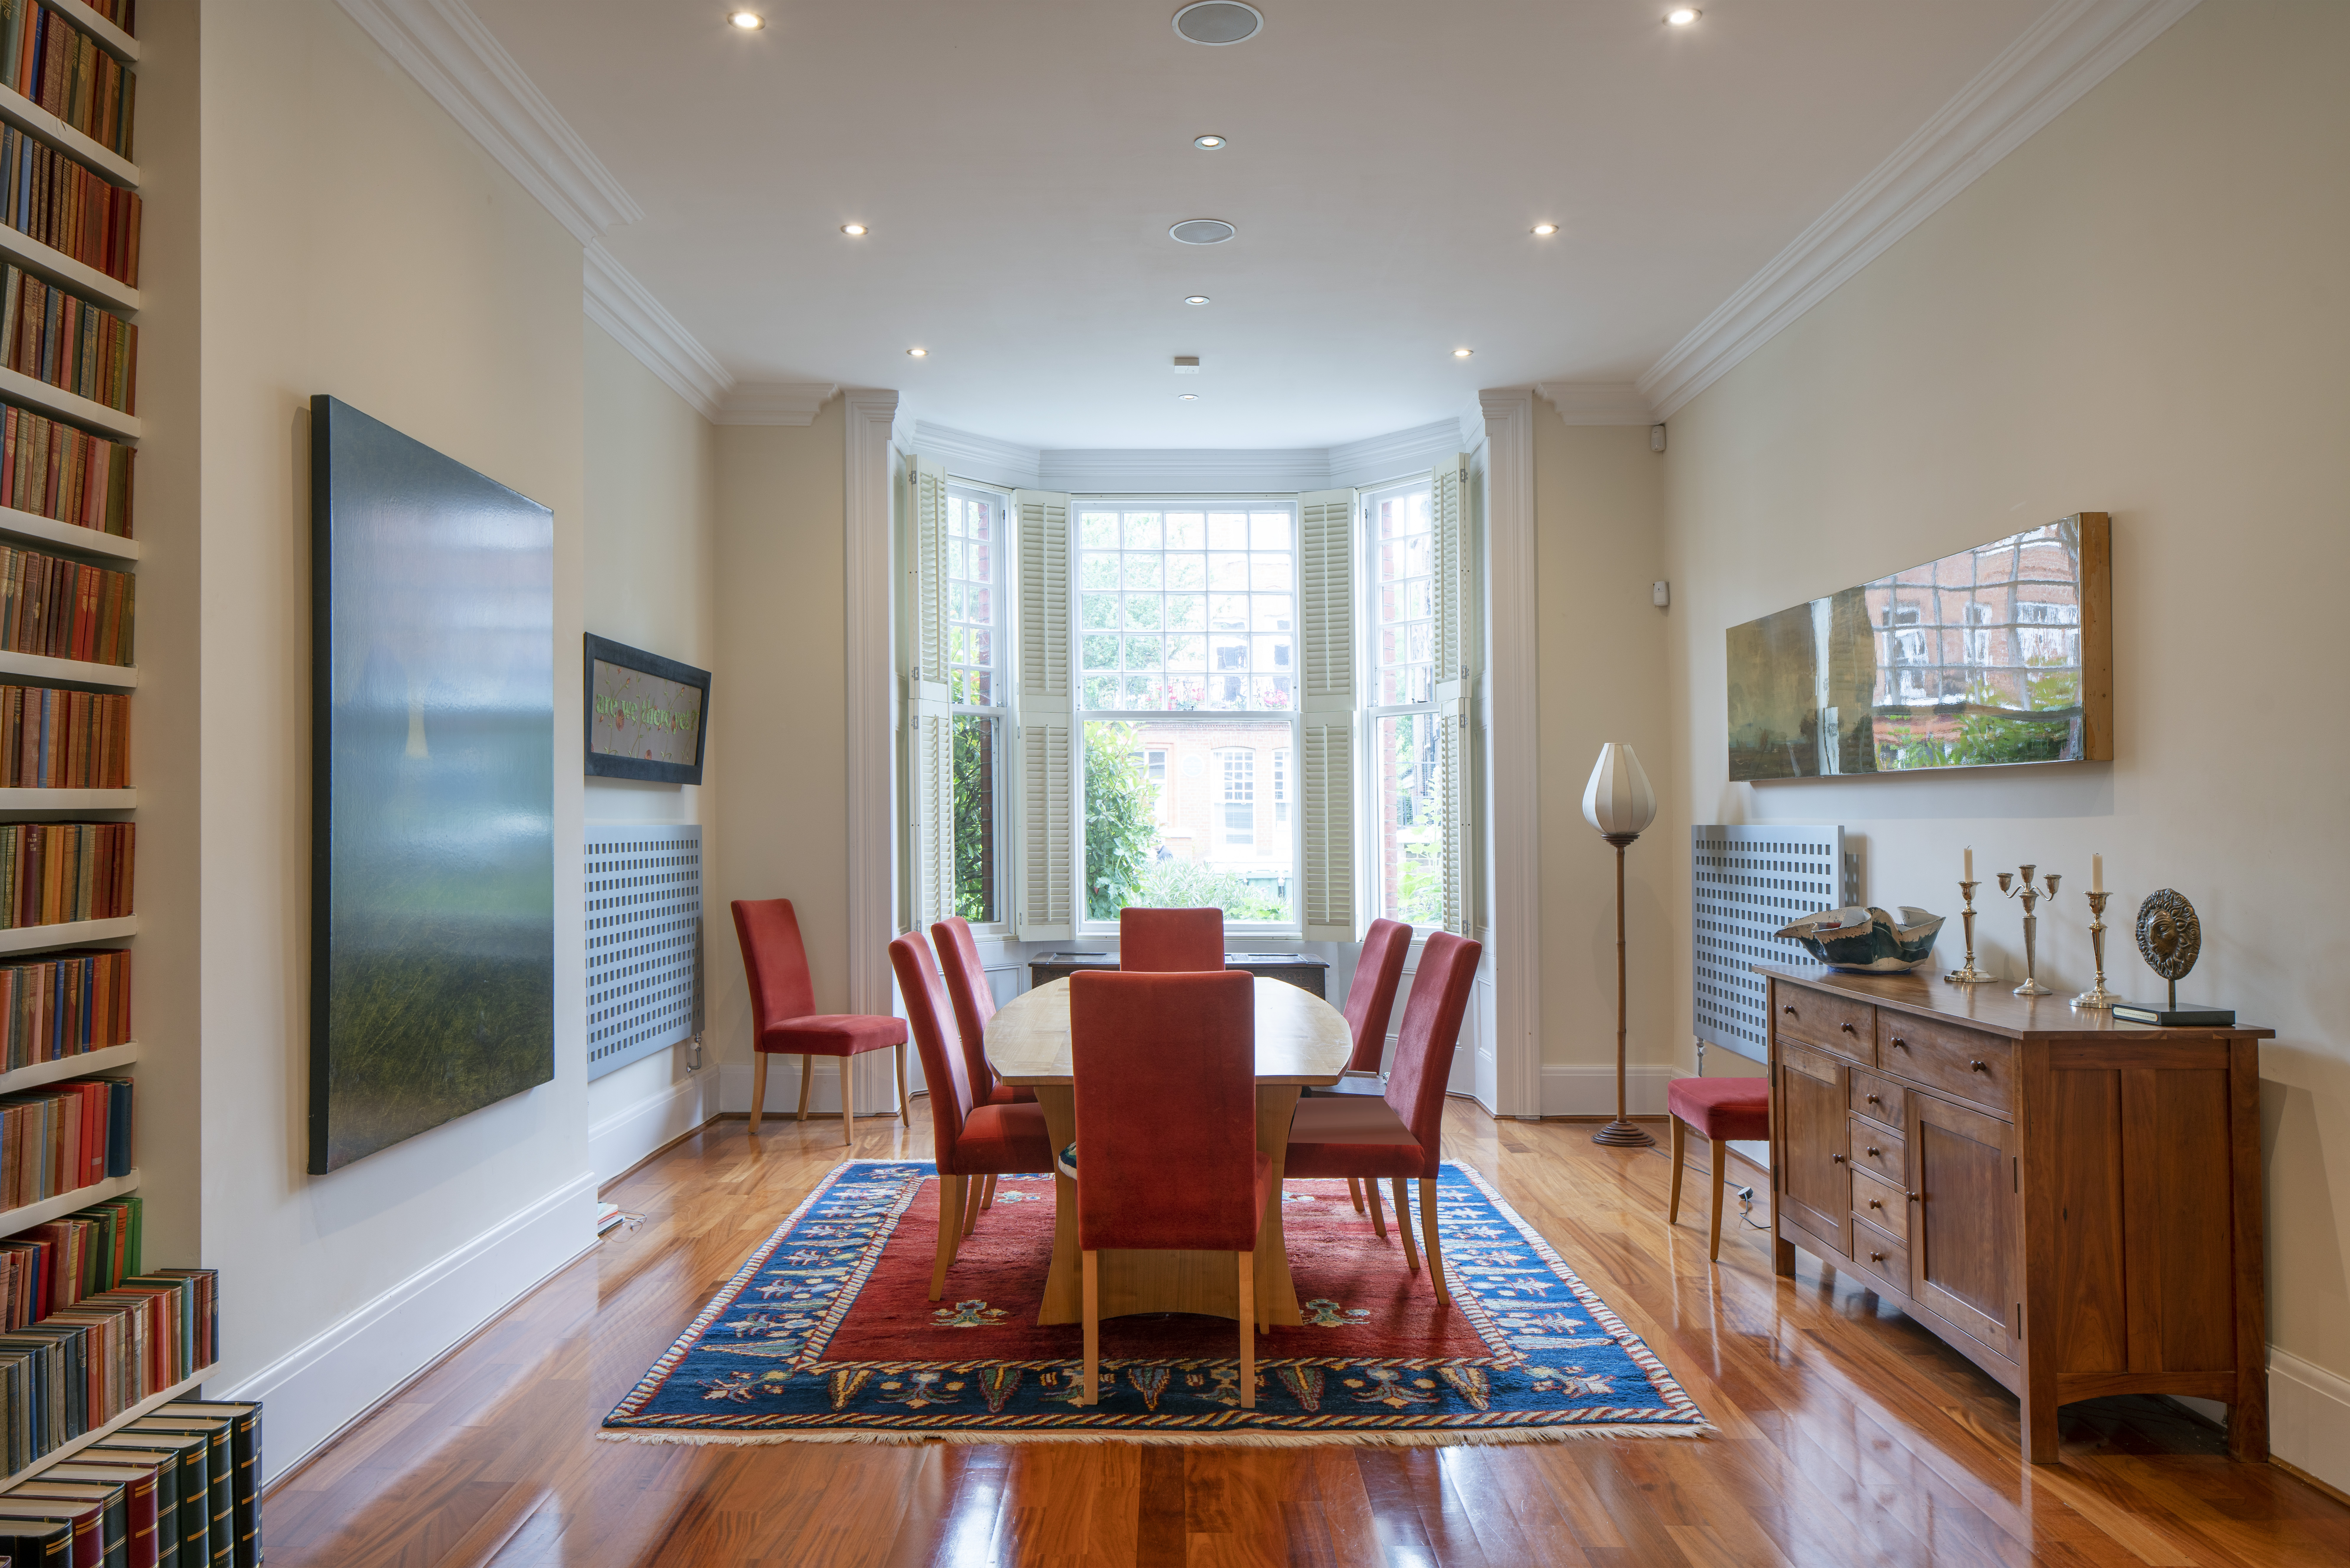 Former Bank of England governor Mark Carney's former home is for sale. Photo: Aston Chase